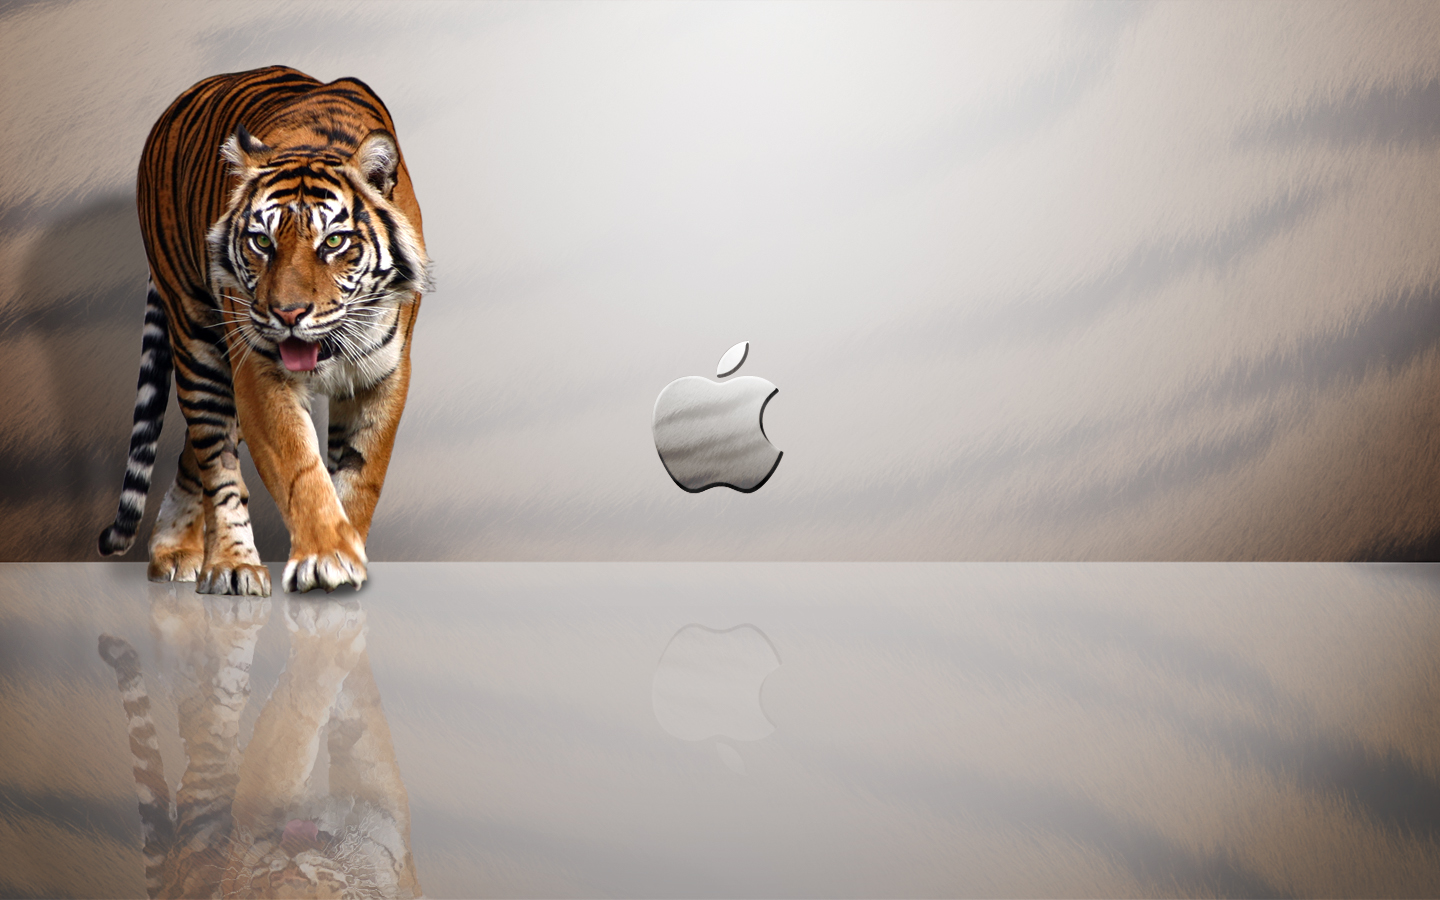 Cool Wallpapers Pics Cool Wallpapers For Mac 1440x900